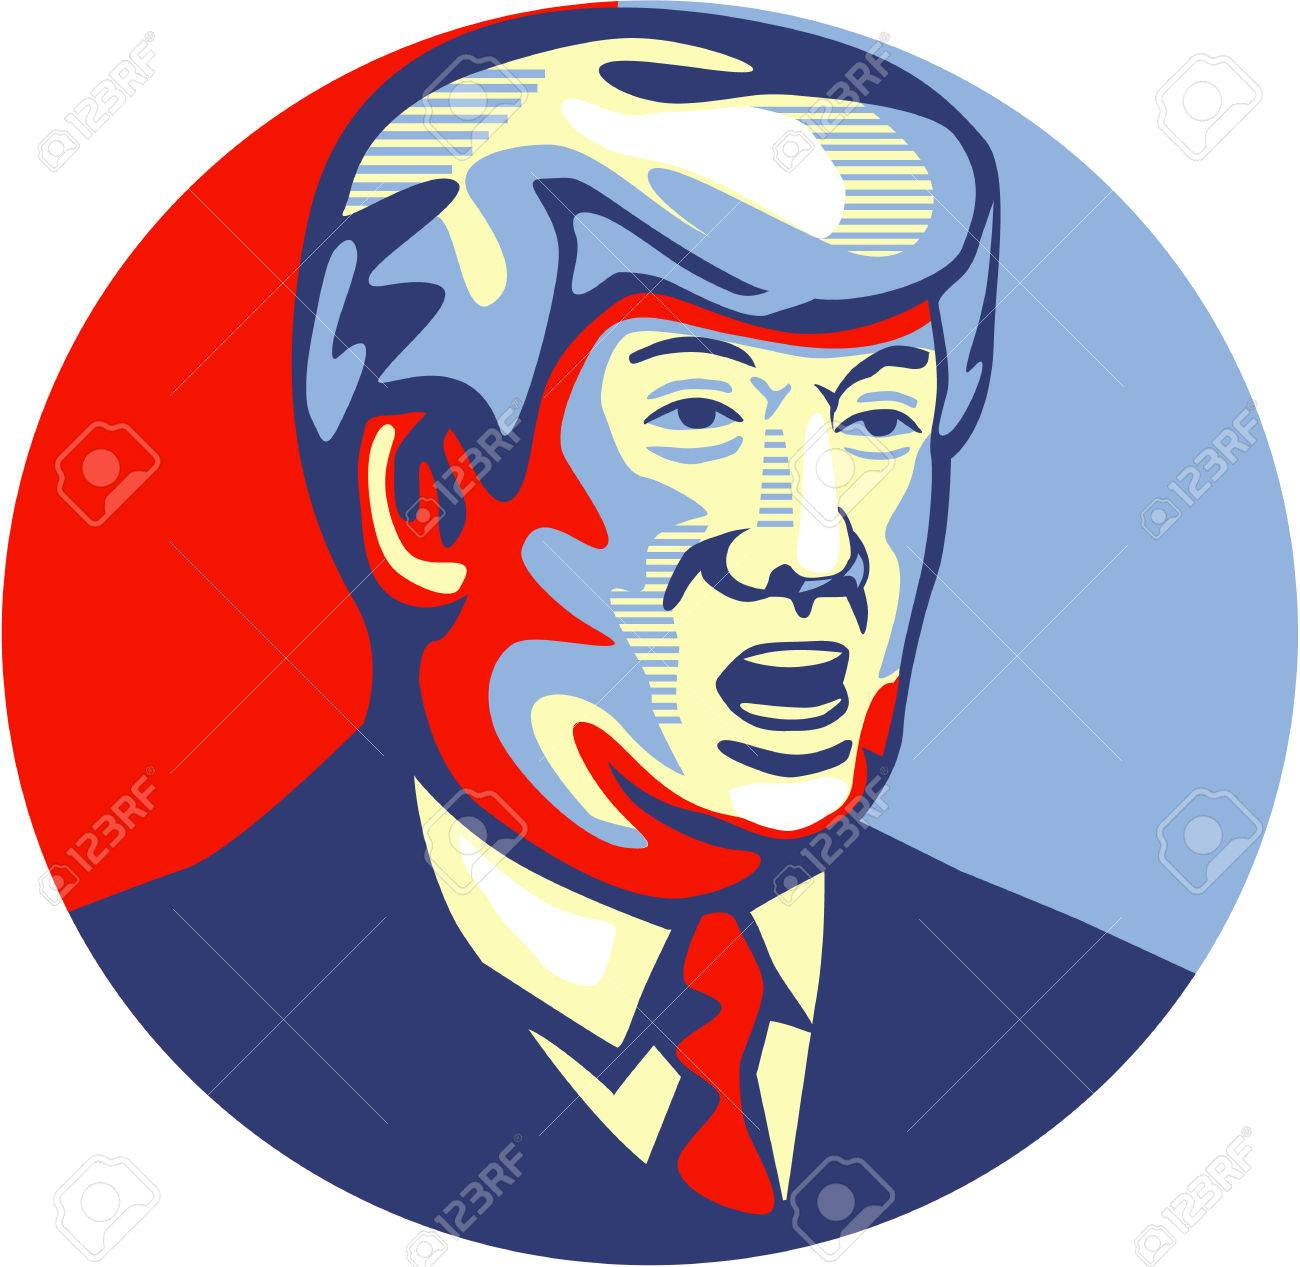 Illustration showing American real estate magnate, television personality, politician and Republican 2016 presidential candidate Donald John Trump set inside circle isolated background done in retro style. Stock Photo - 43512614